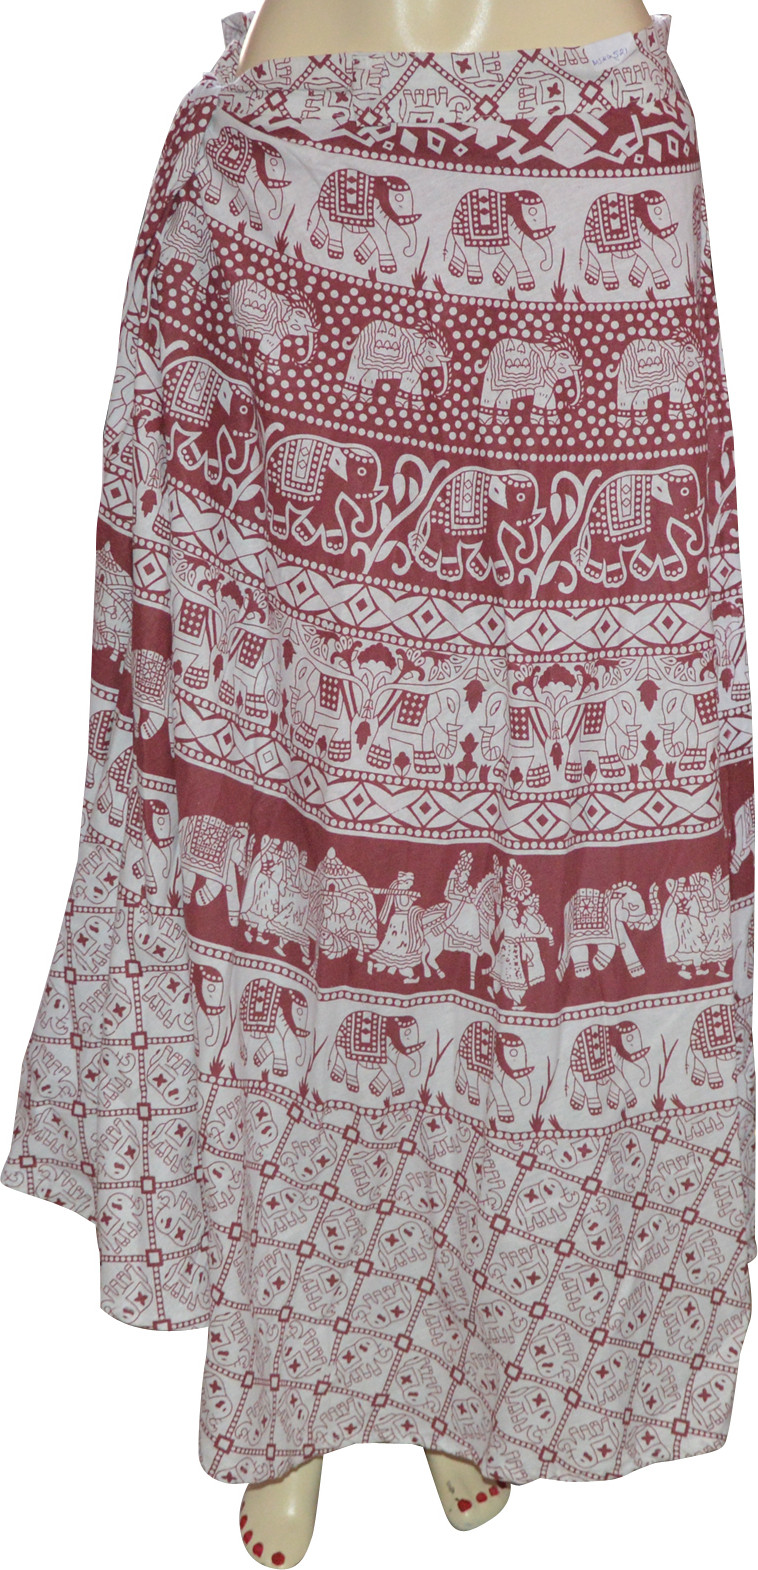 Marusthali Printed Womens Wrap Around Pink, White Skirt